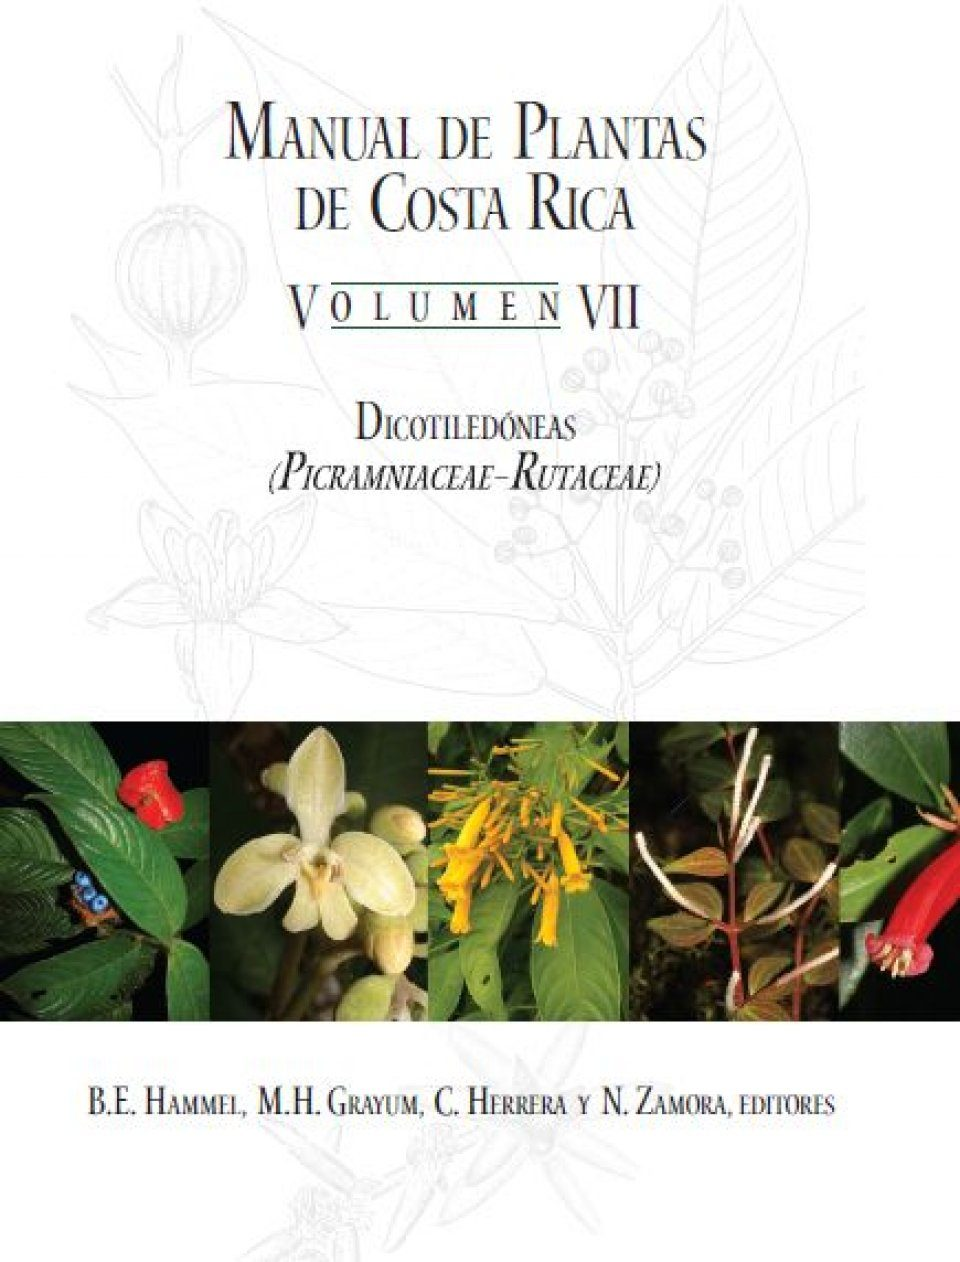 Manual de Plantas de Costa Rica: Volume VII